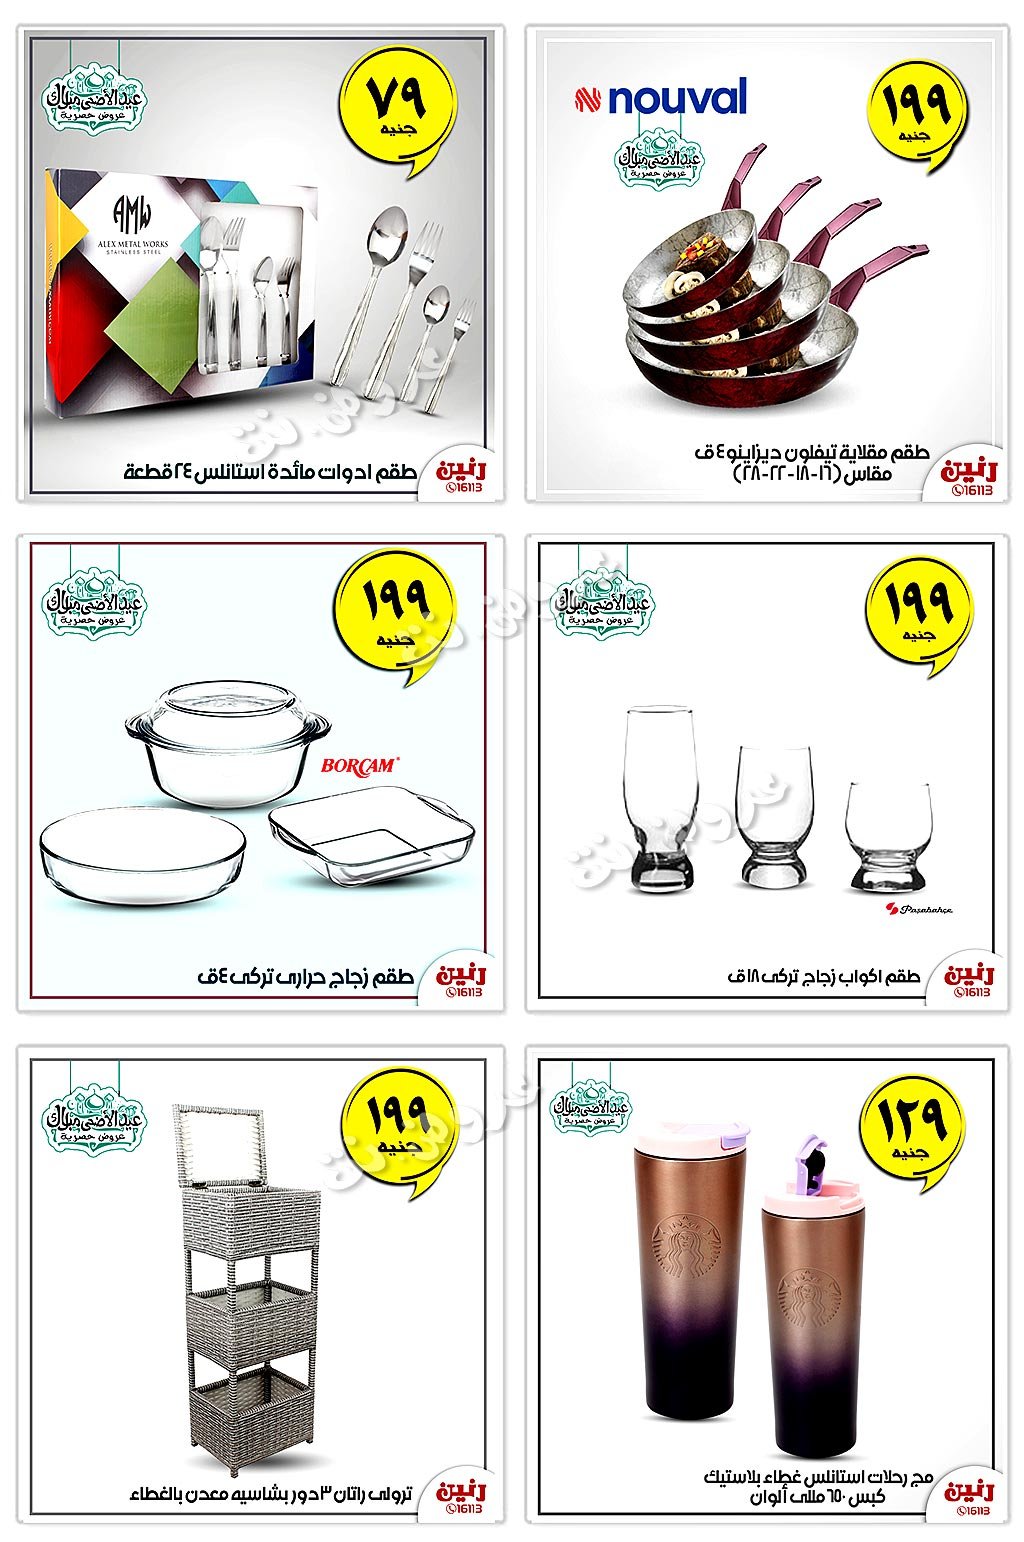 raneen offers from 31july to 3aug 2020 page number 4 عروض رنين من 31 يوليو حتى 3 أغسطس 2020 صفحة رقم 4